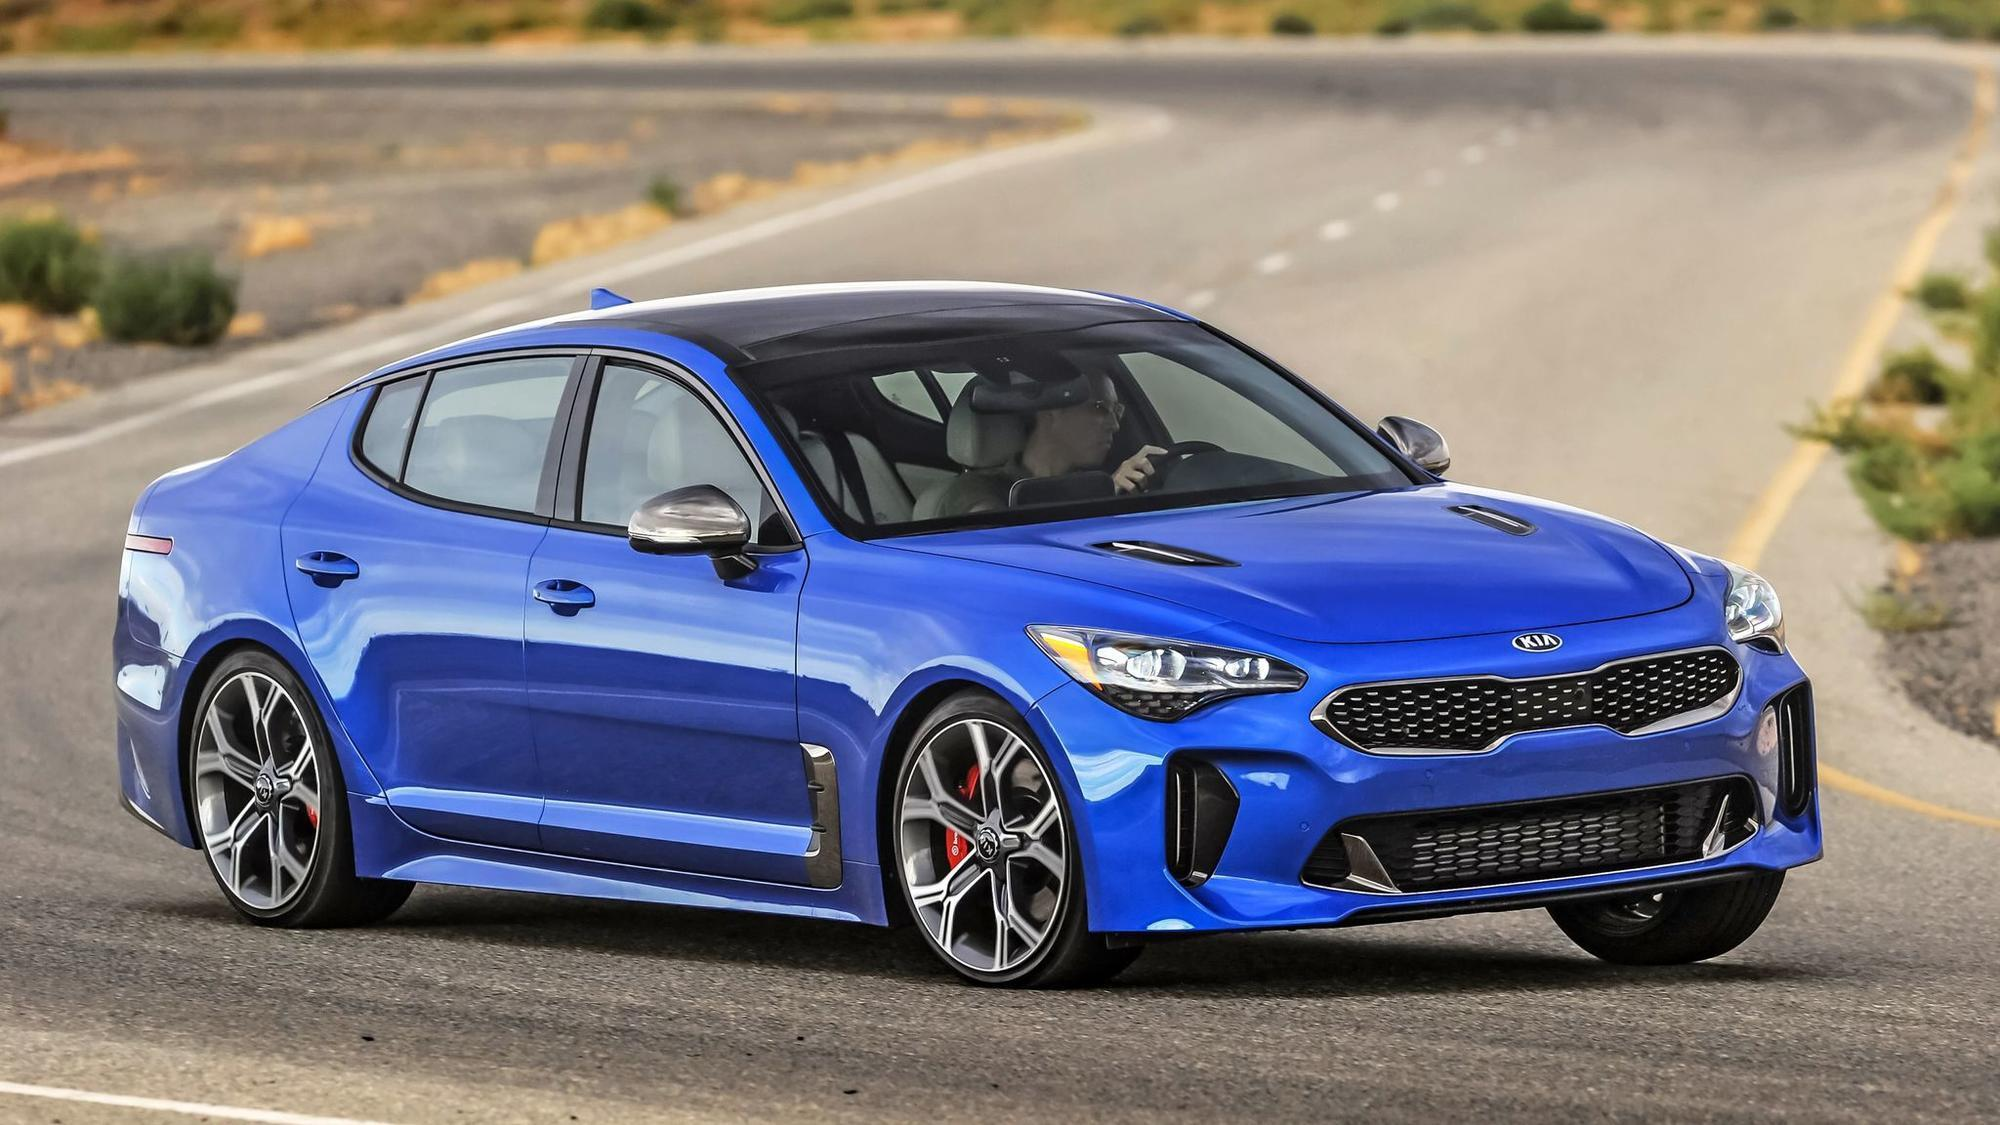 2018 Honda Accord Pictures >> 2018 Kia Stinger GT: A switchblade of change - The San ...